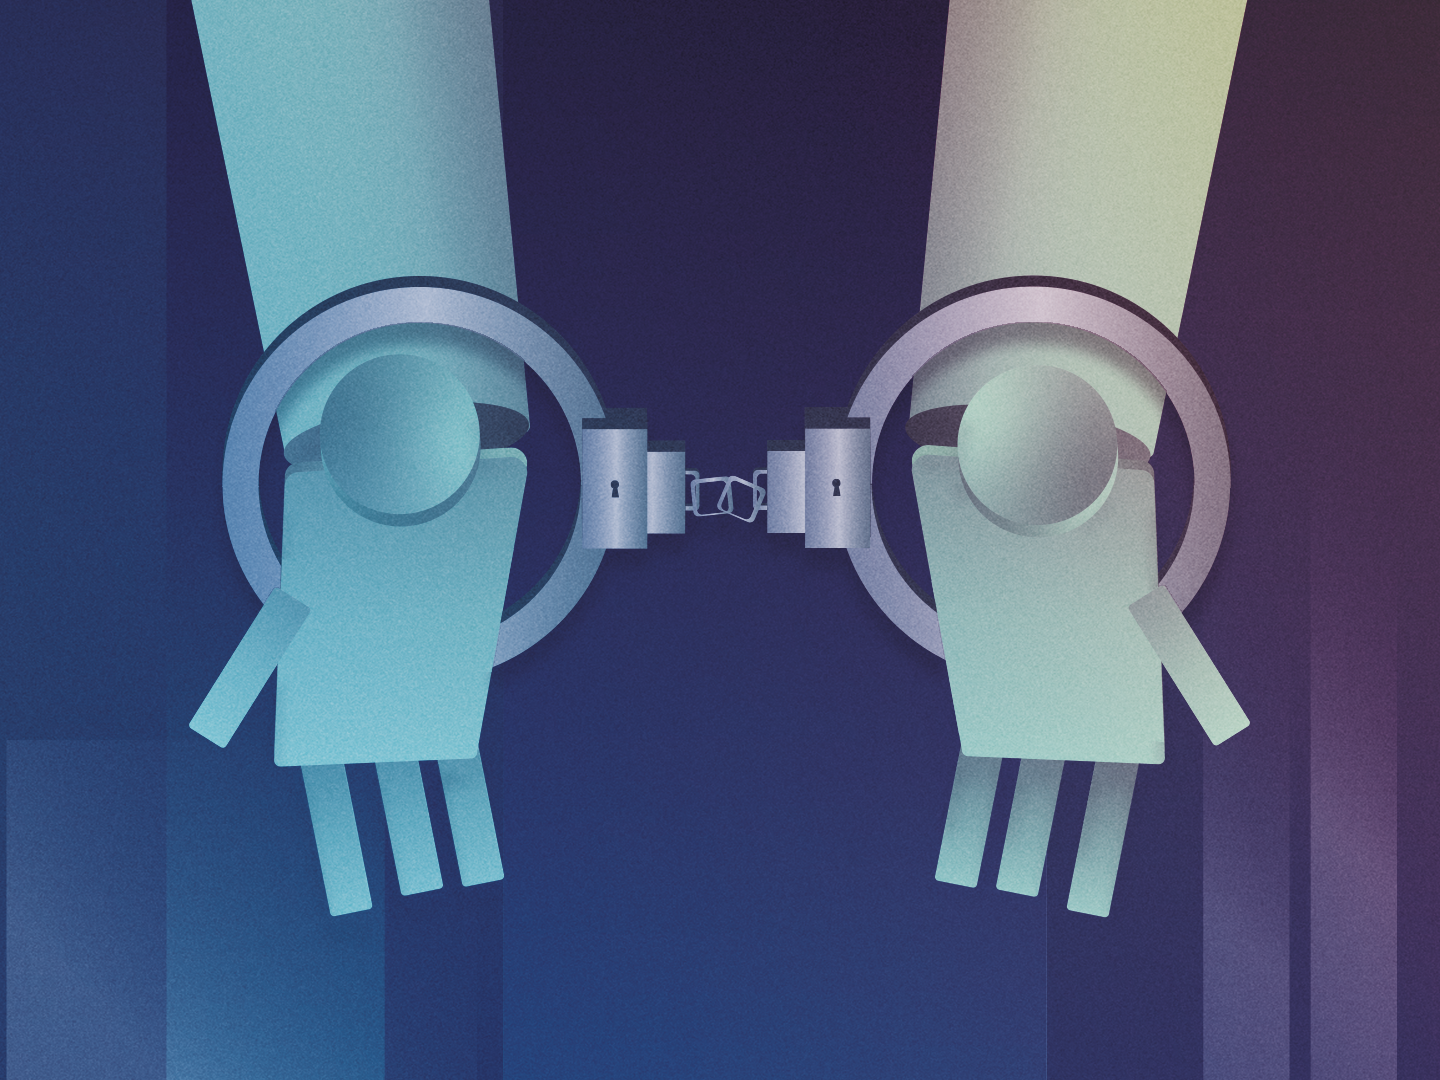 Handcuff that robot sketch storyboard character art photoshop illustration